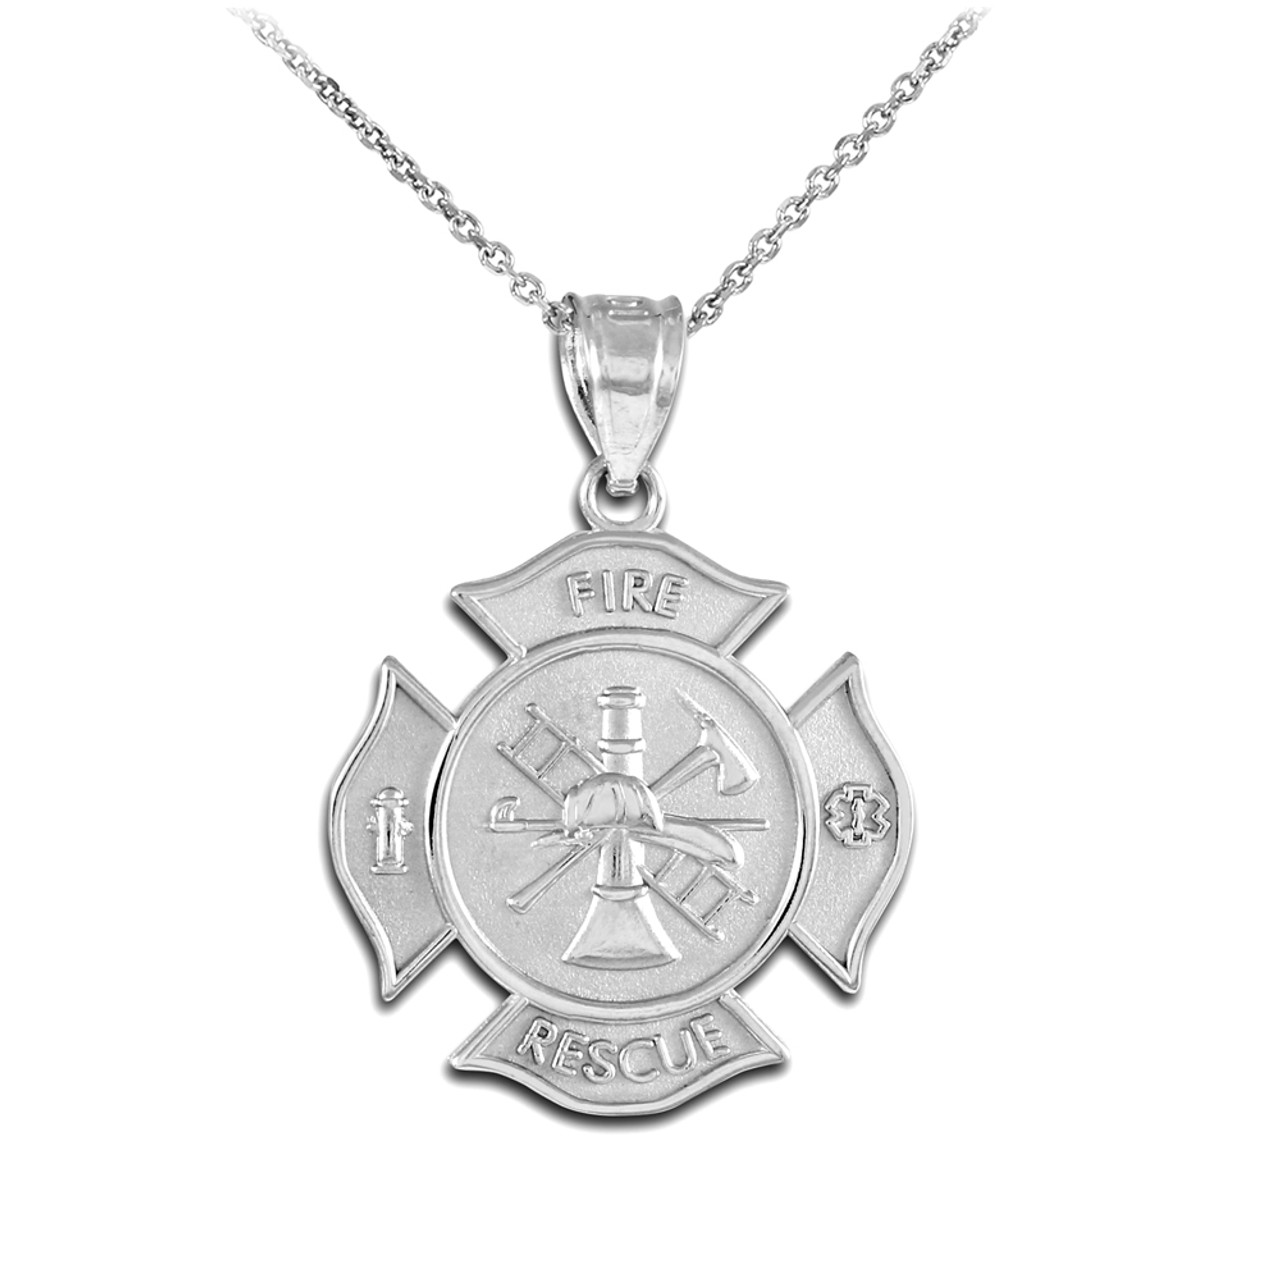 pendant necklace cross maltese firefighter mizpah